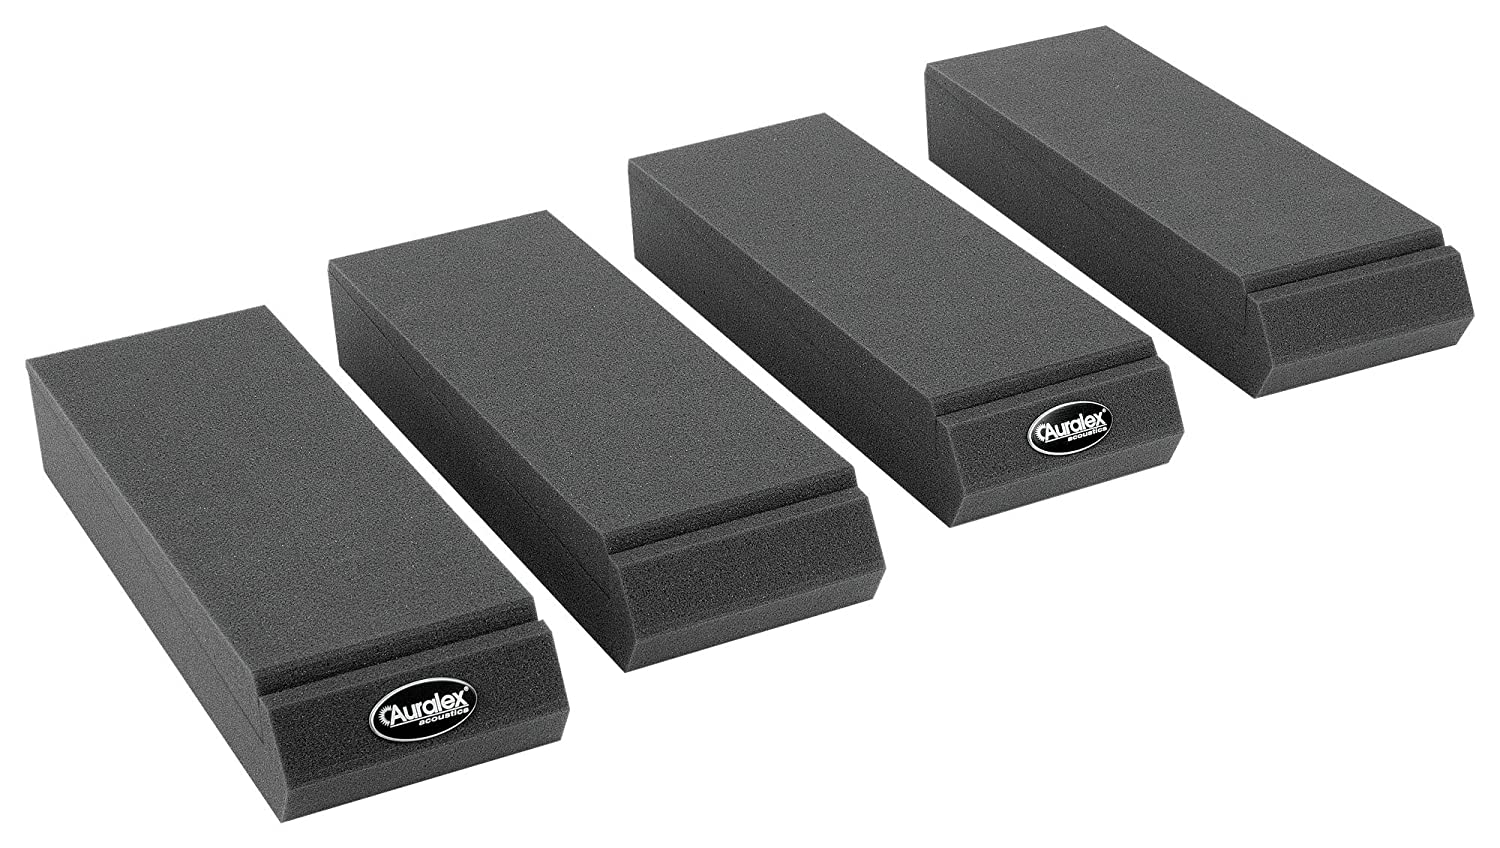 Auralex Acoustics MOPAD MOPAD Monitor Acoustic Isolation Pads (1 Pair), Charcoal